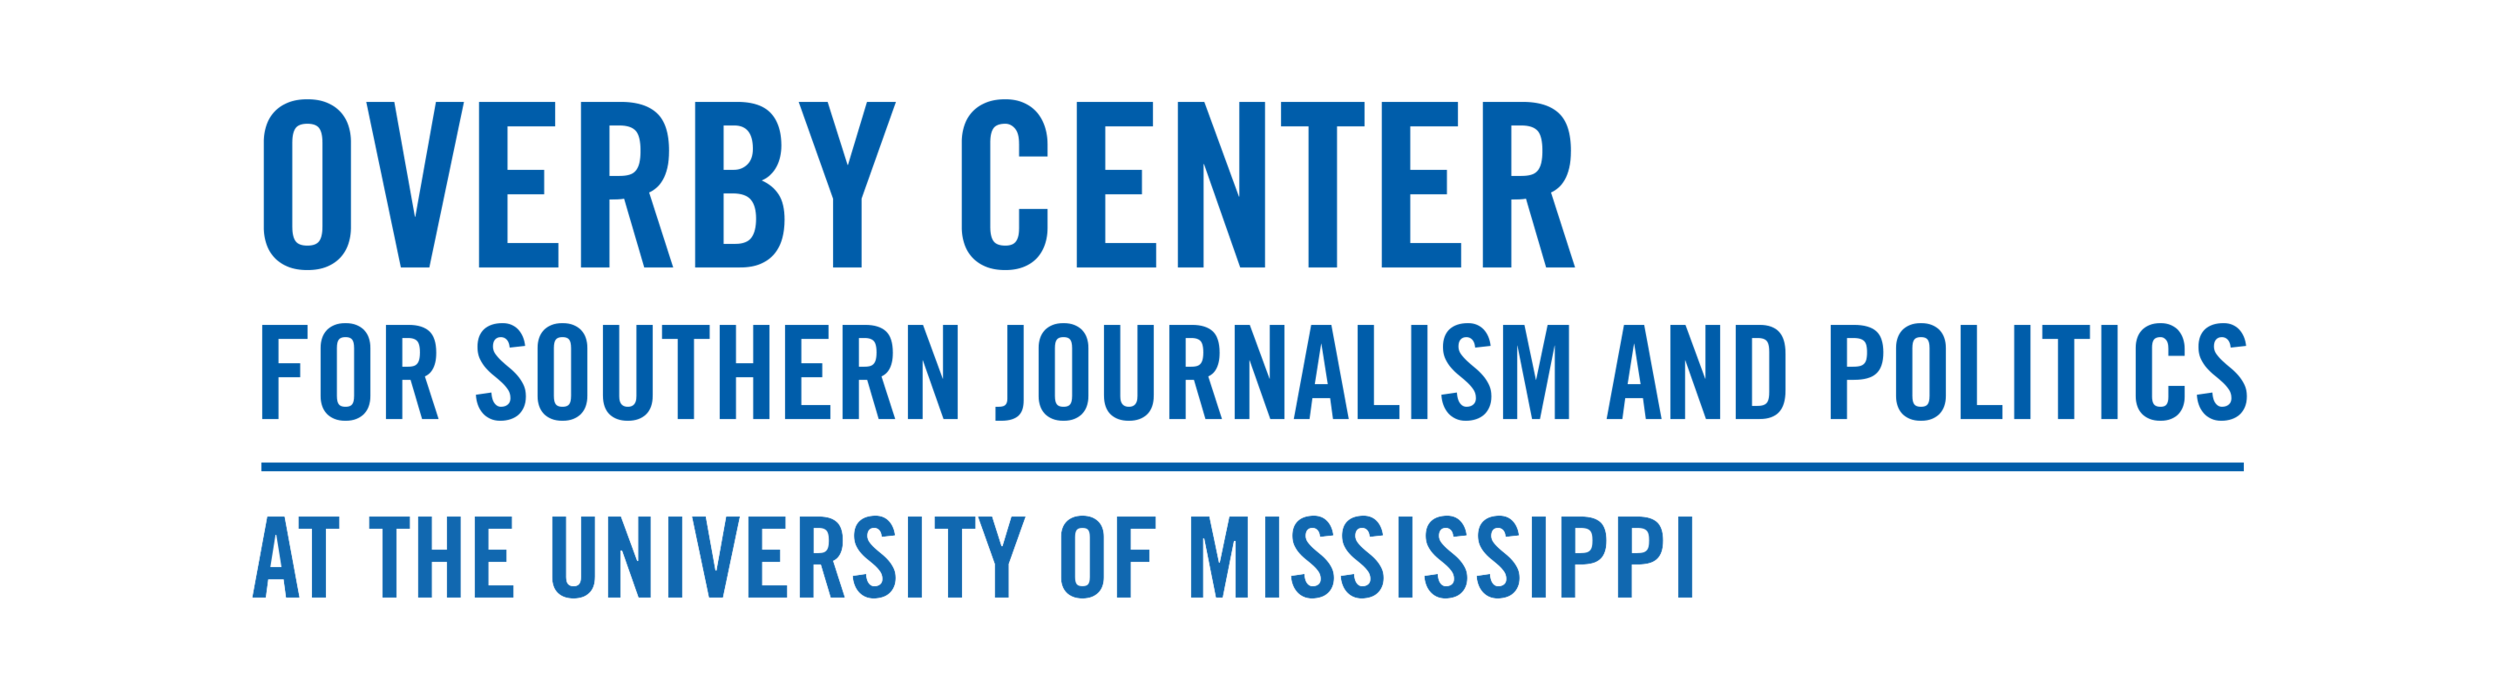 2018 Overby Center Logo-color-clear background-blue.png